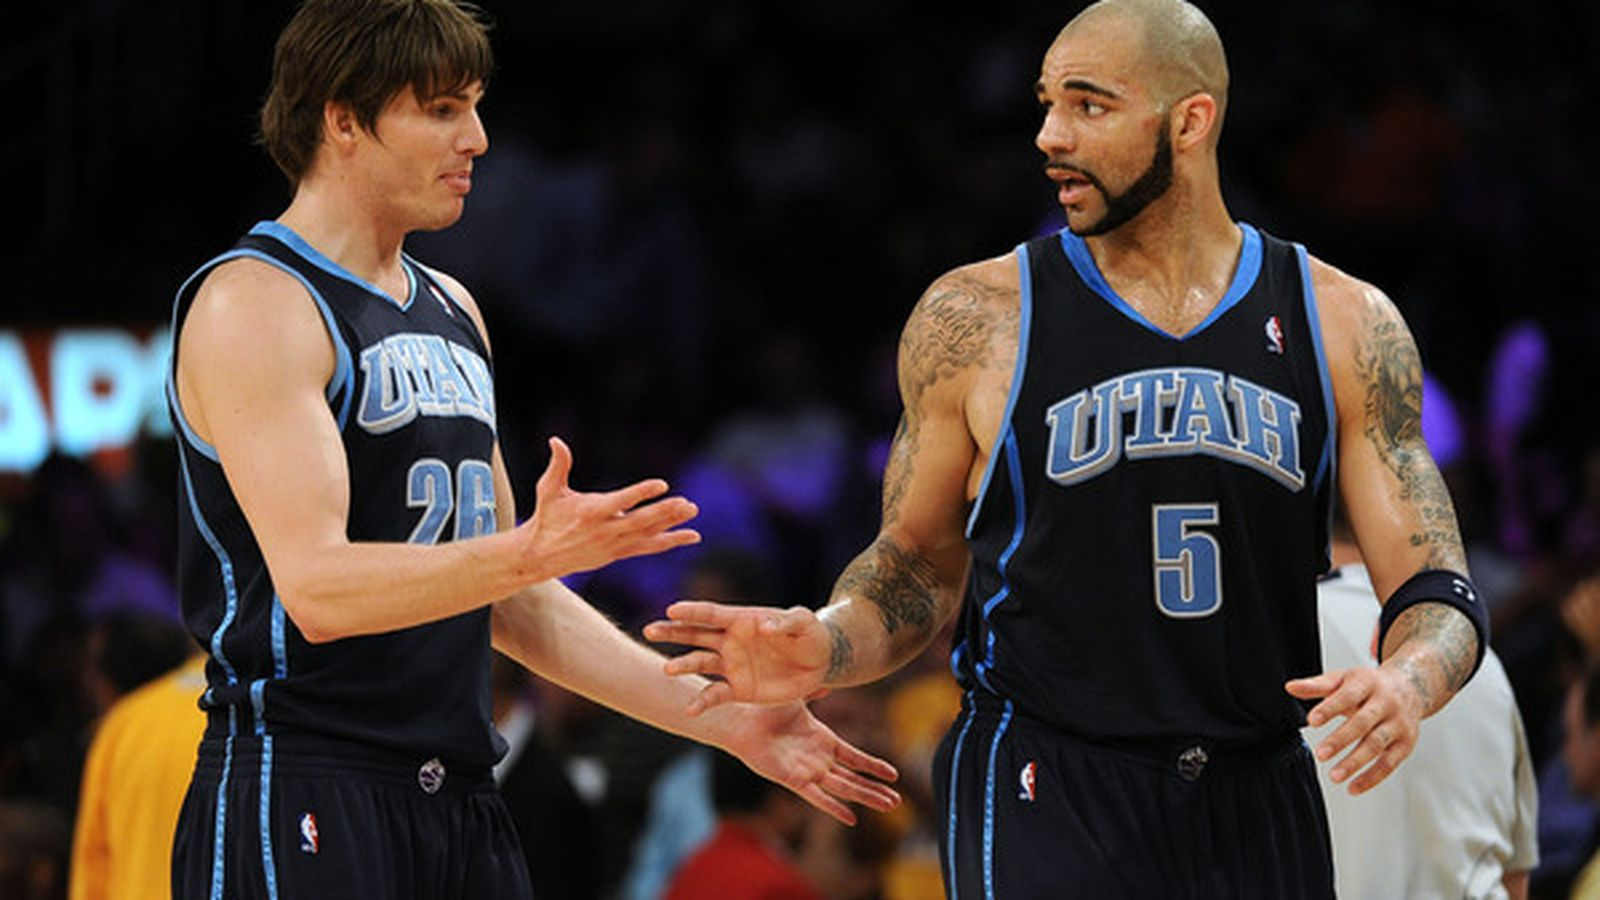 Kyle Korver Joins Carlos Boozer In Chicago - SLC Dunk